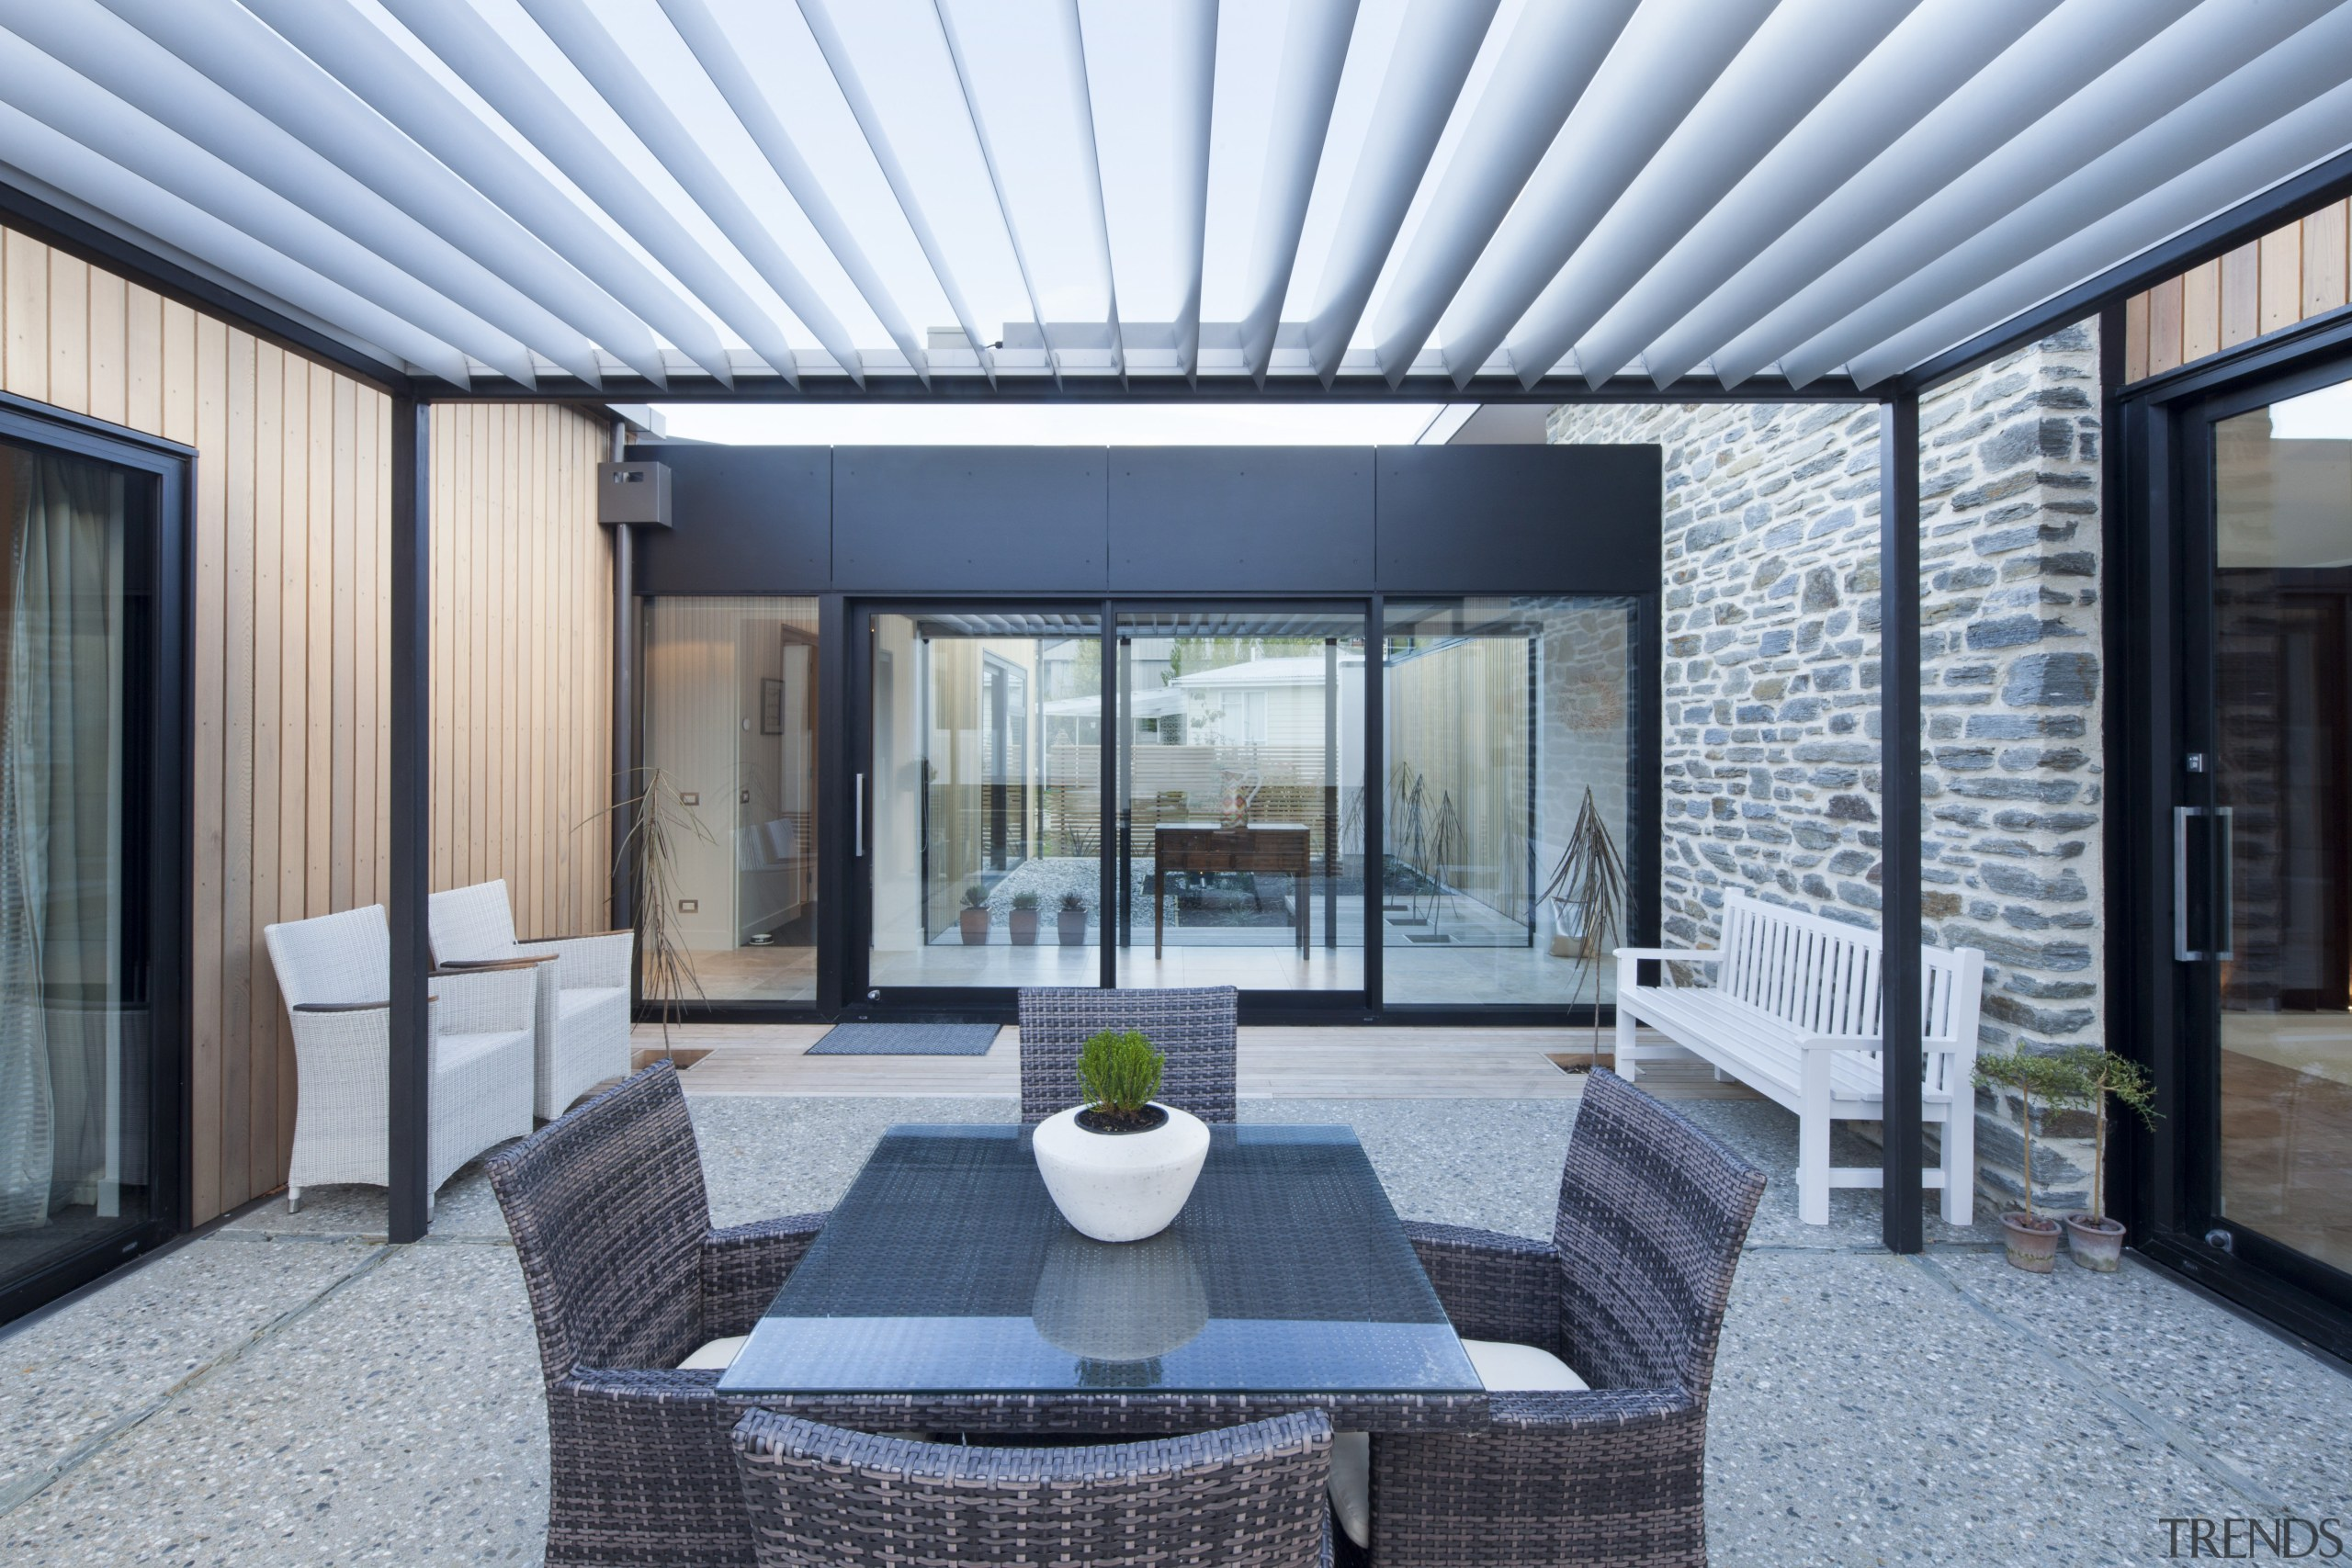 Smooth-gliding sliders from the Fairview Architectural and Thermal architecture, daylighting, house, interior design, patio, property, real estate, roof, window, gray